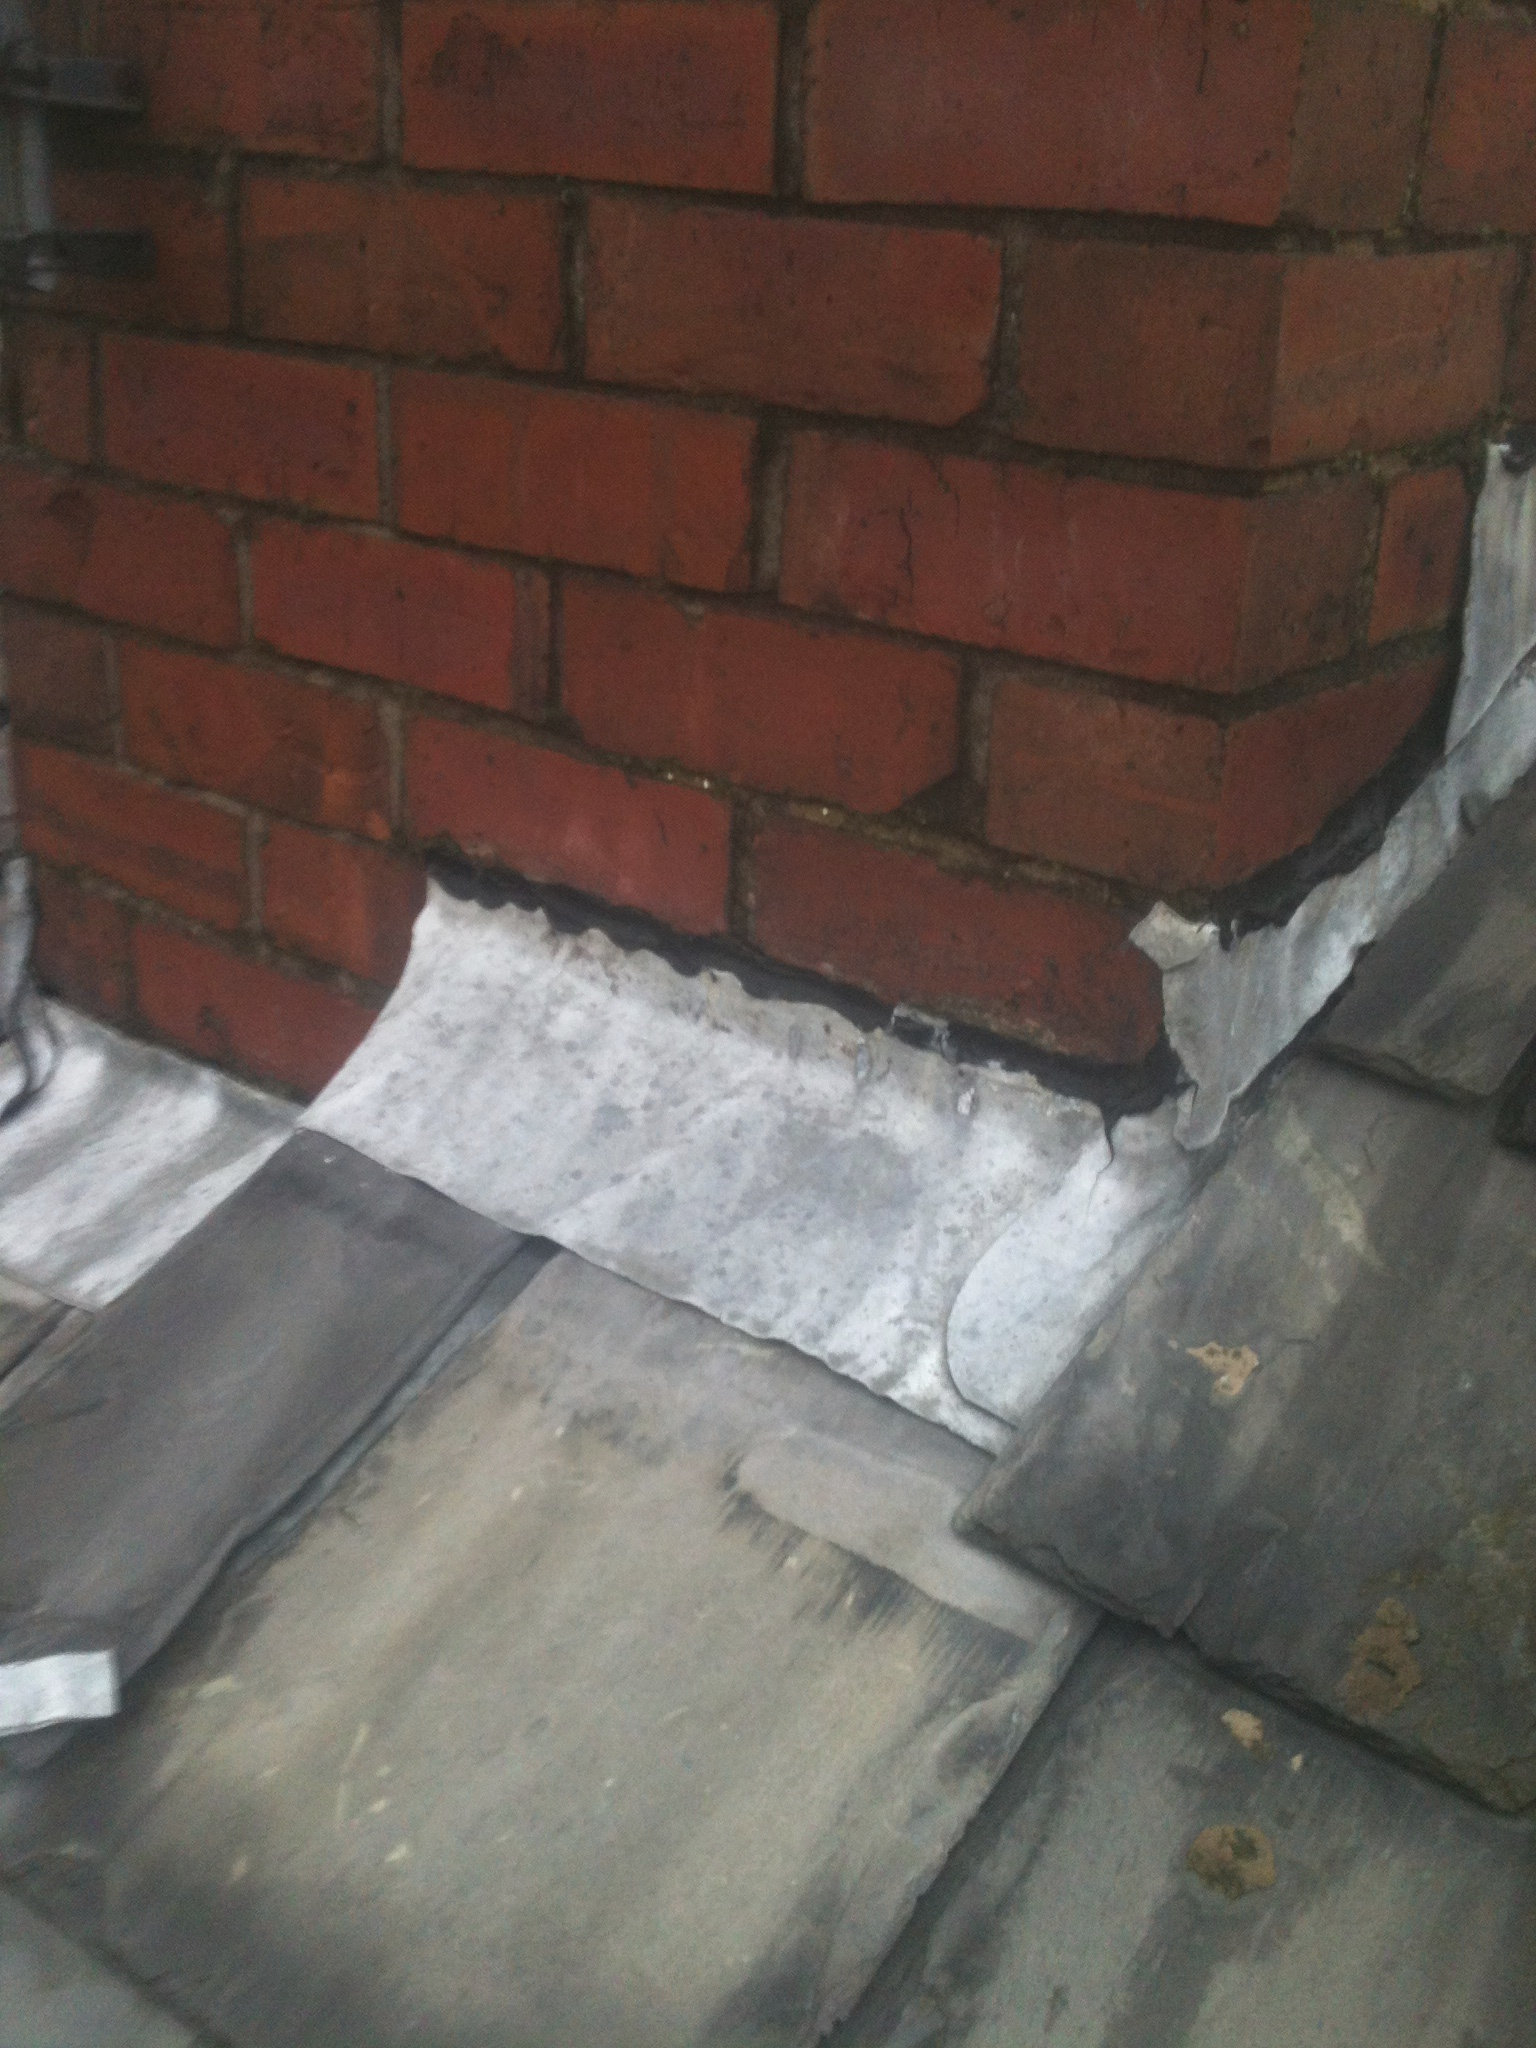 chimney was missing flashings so we replaced with new lead.